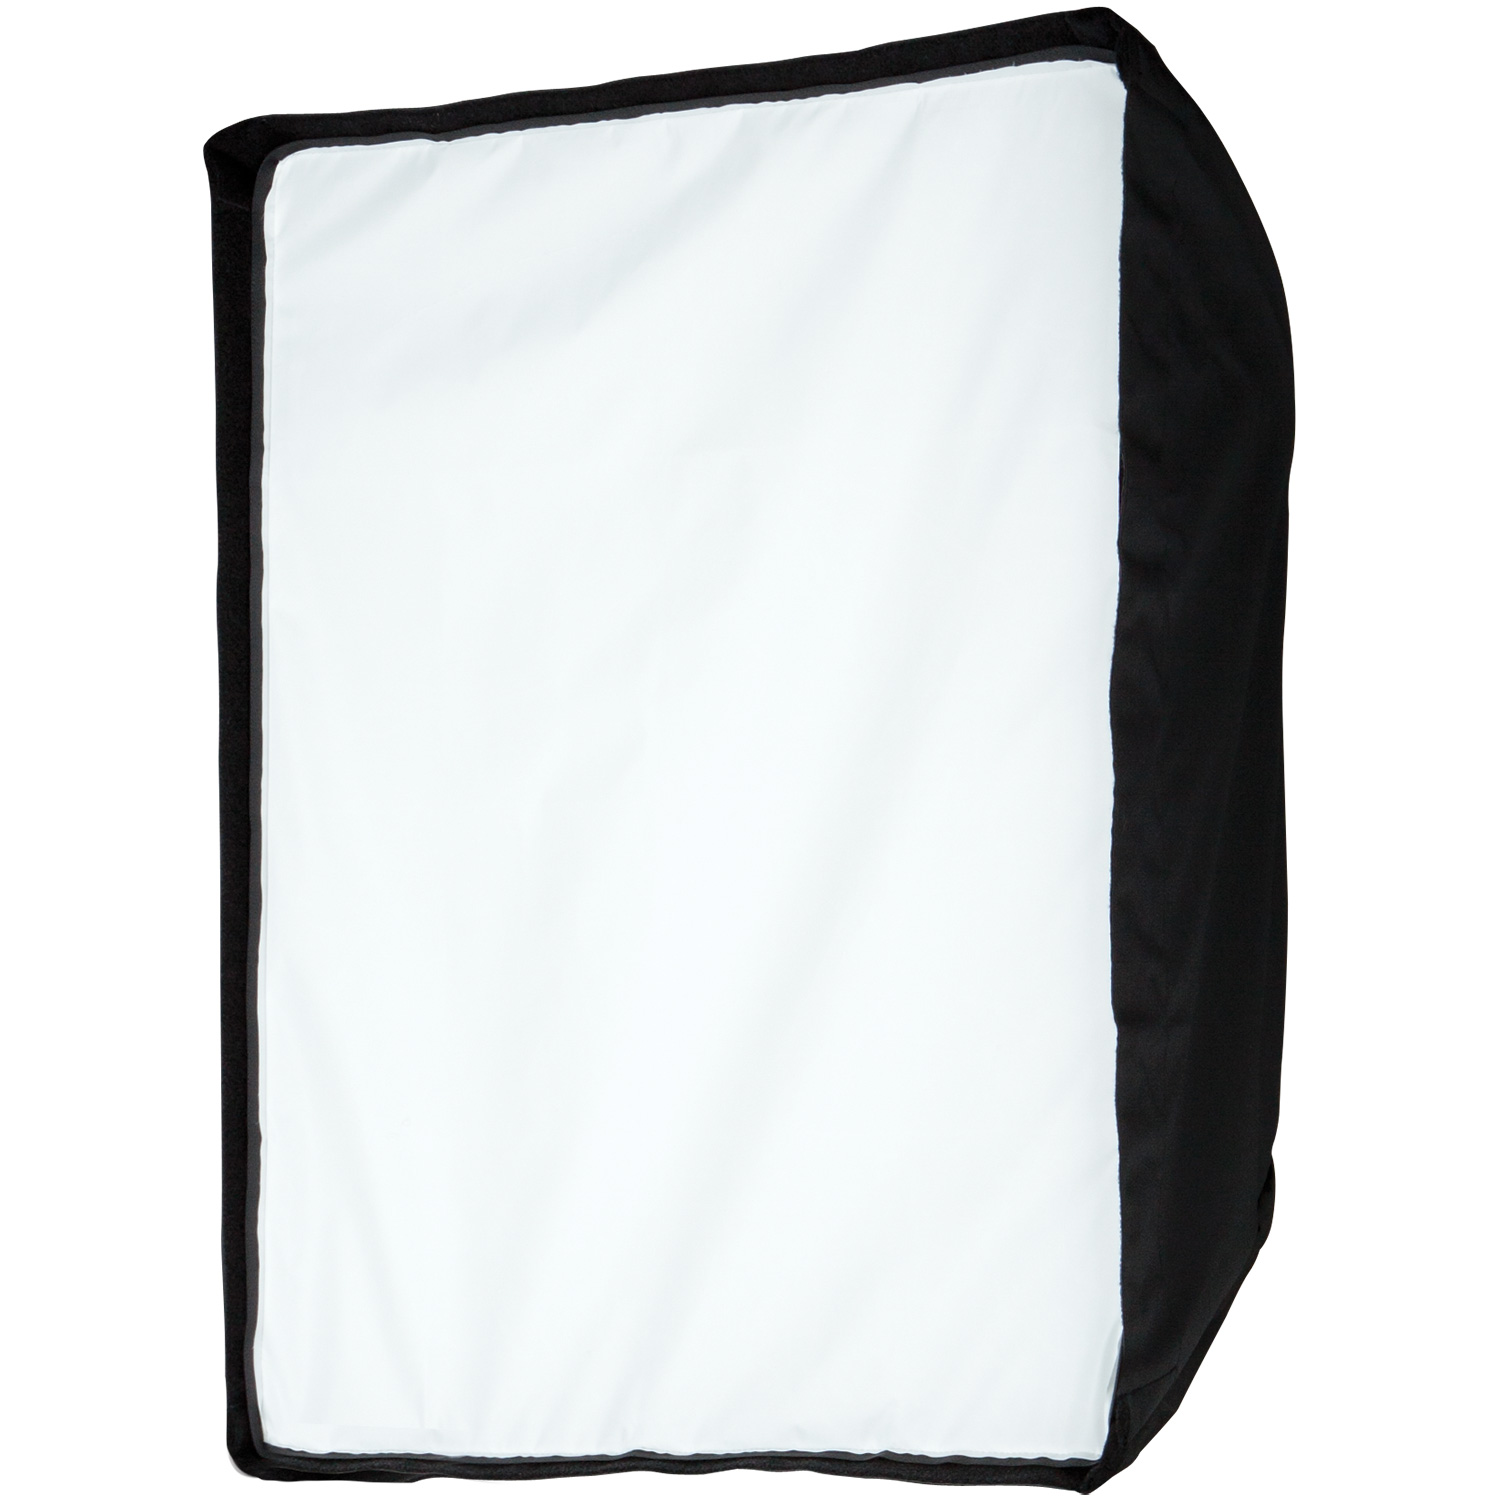 24-in. x 32-in. Pro Softbox